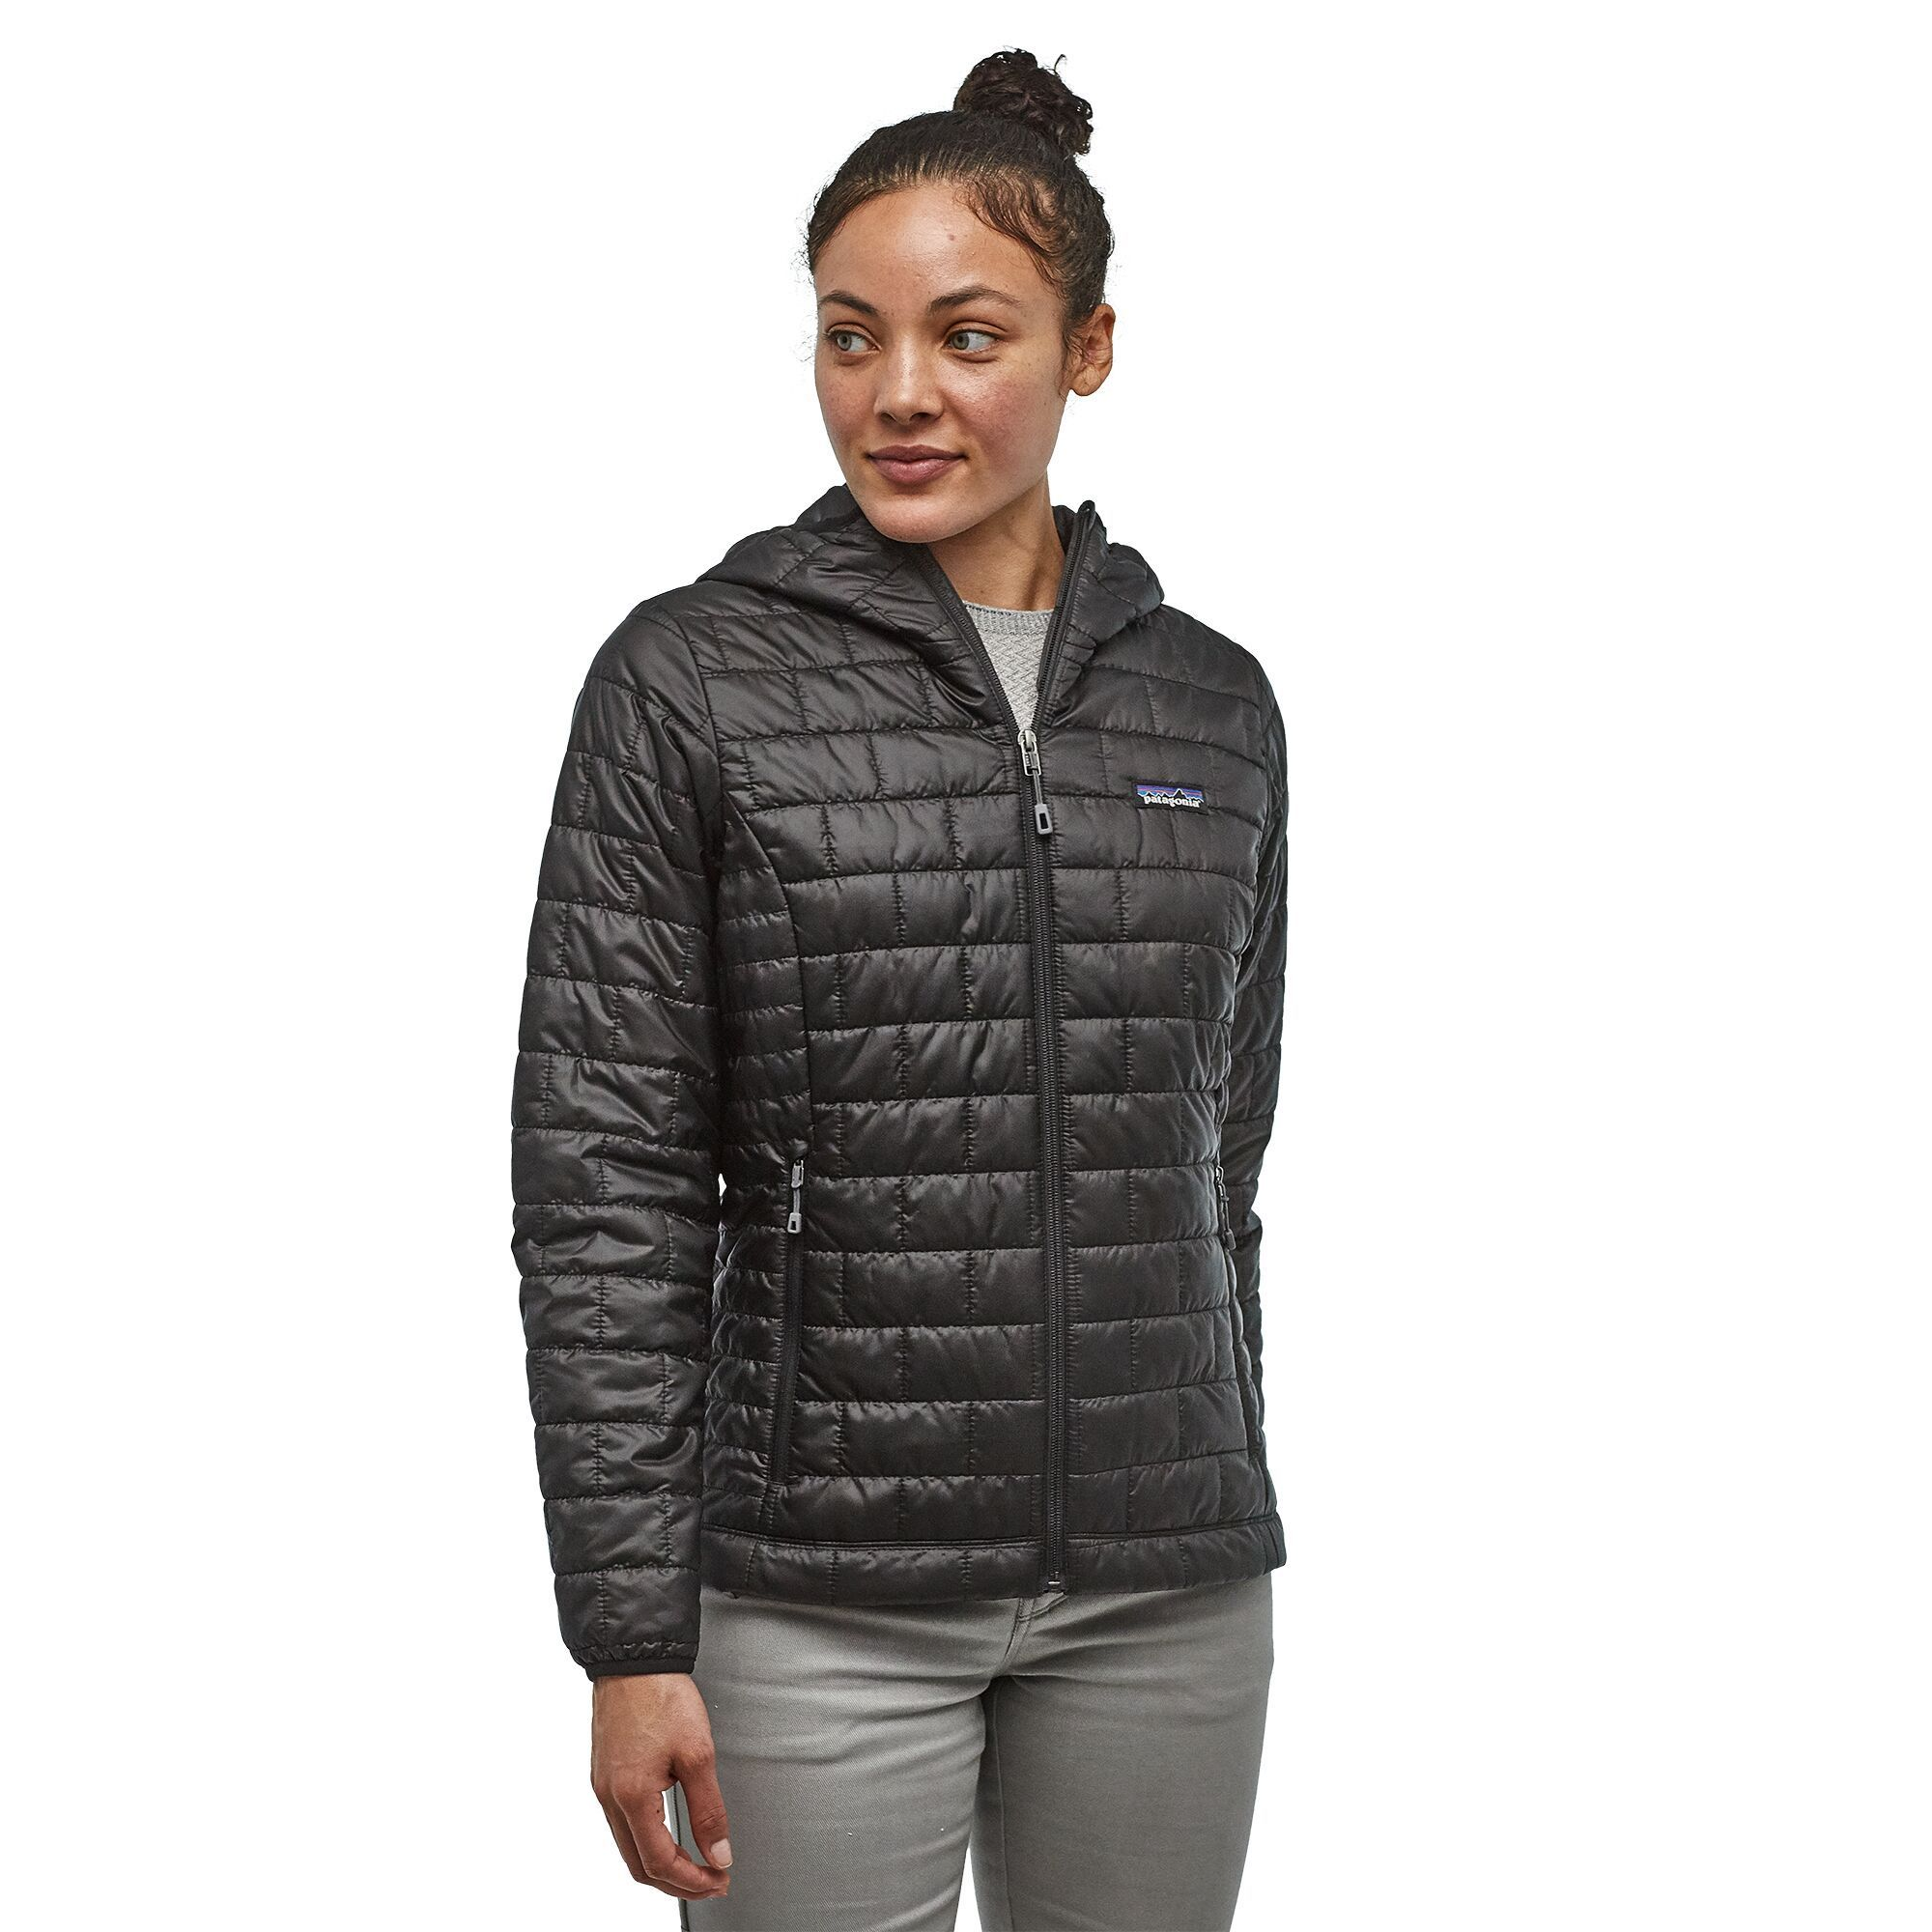 Patagonia - Women's Nano Puff® Hoody - Black - Recycled Polyester - Weekendbee - sustainable sportswear